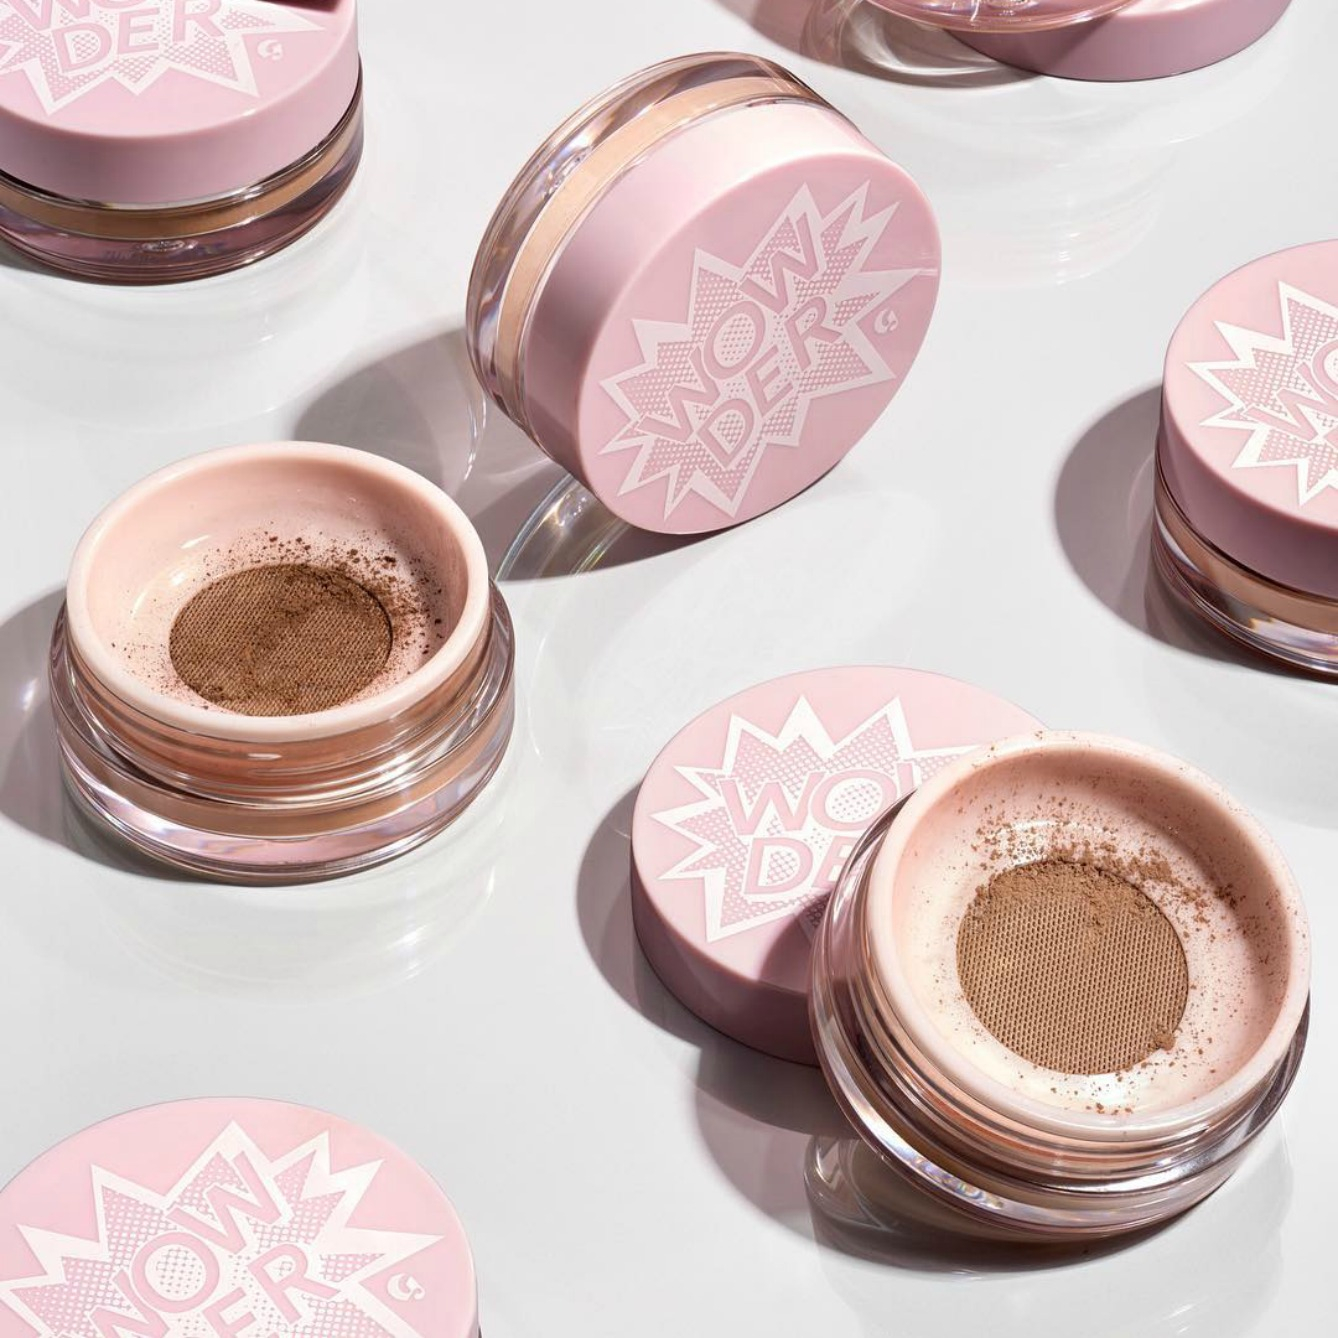 Glossier Debuts a New Powder—Just In Time for the Hottest Part of Summer